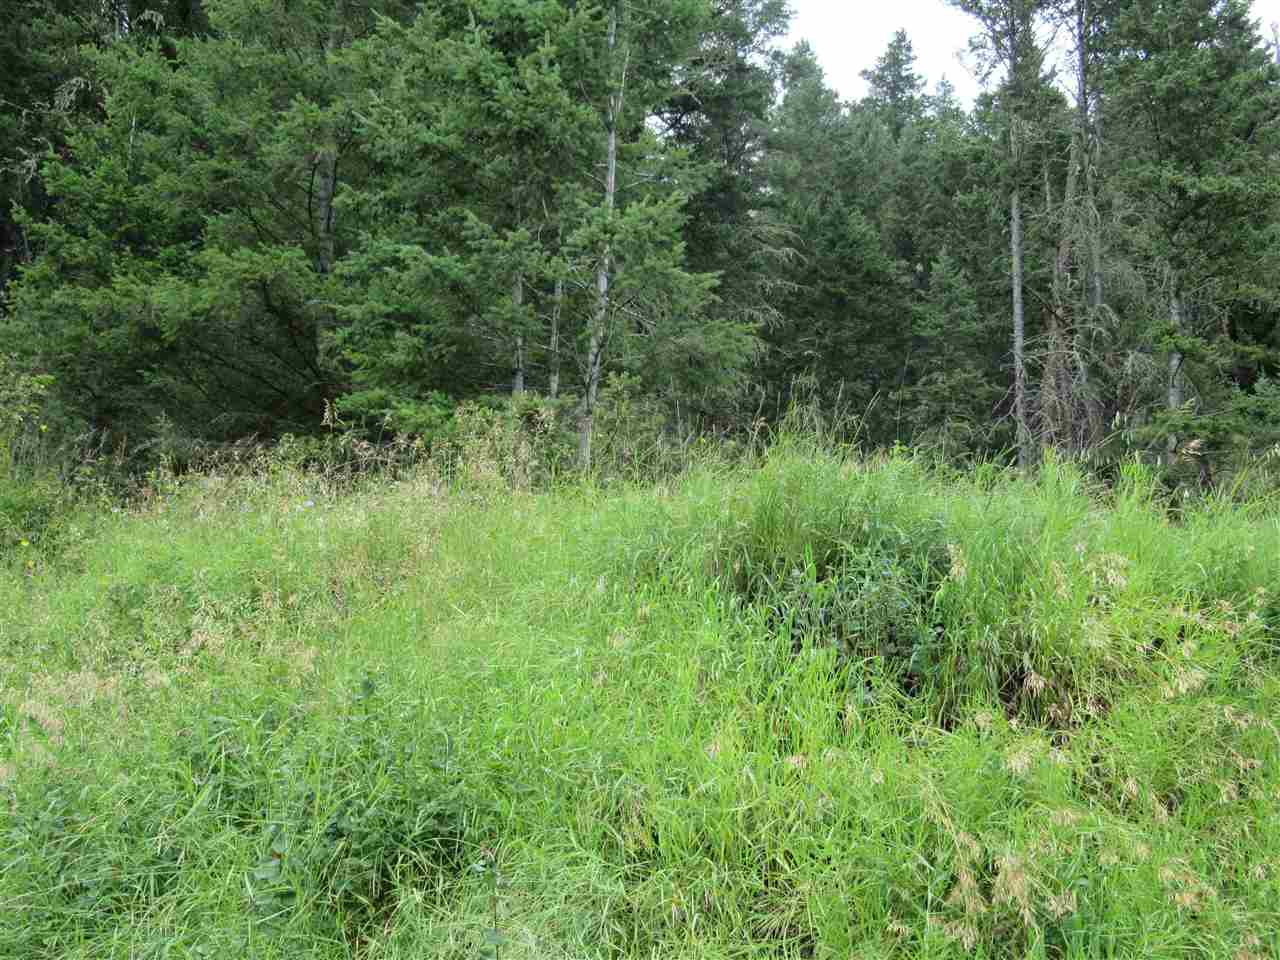 Photo 4: Photos: LOT A FIRDALE Drive in Williams Lake: Williams Lake - Rural North Land for sale (Williams Lake (Zone 27))  : MLS®# R2485053